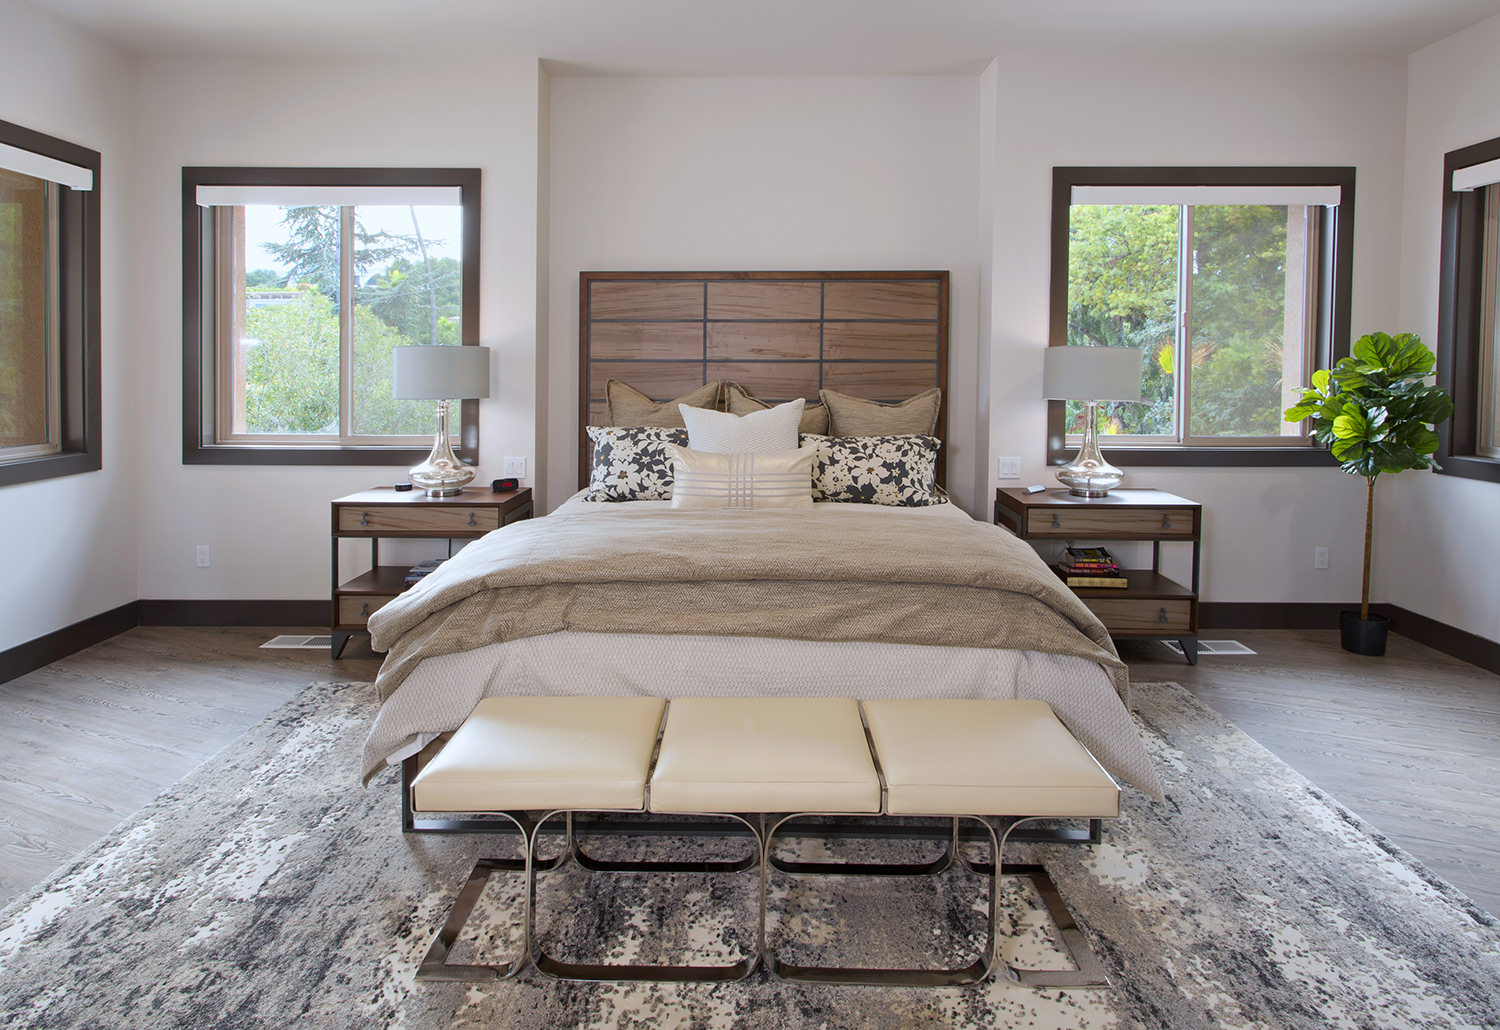 bedroom-decore-interior-design-los-altos-california-ktj-design-co-2.jpg